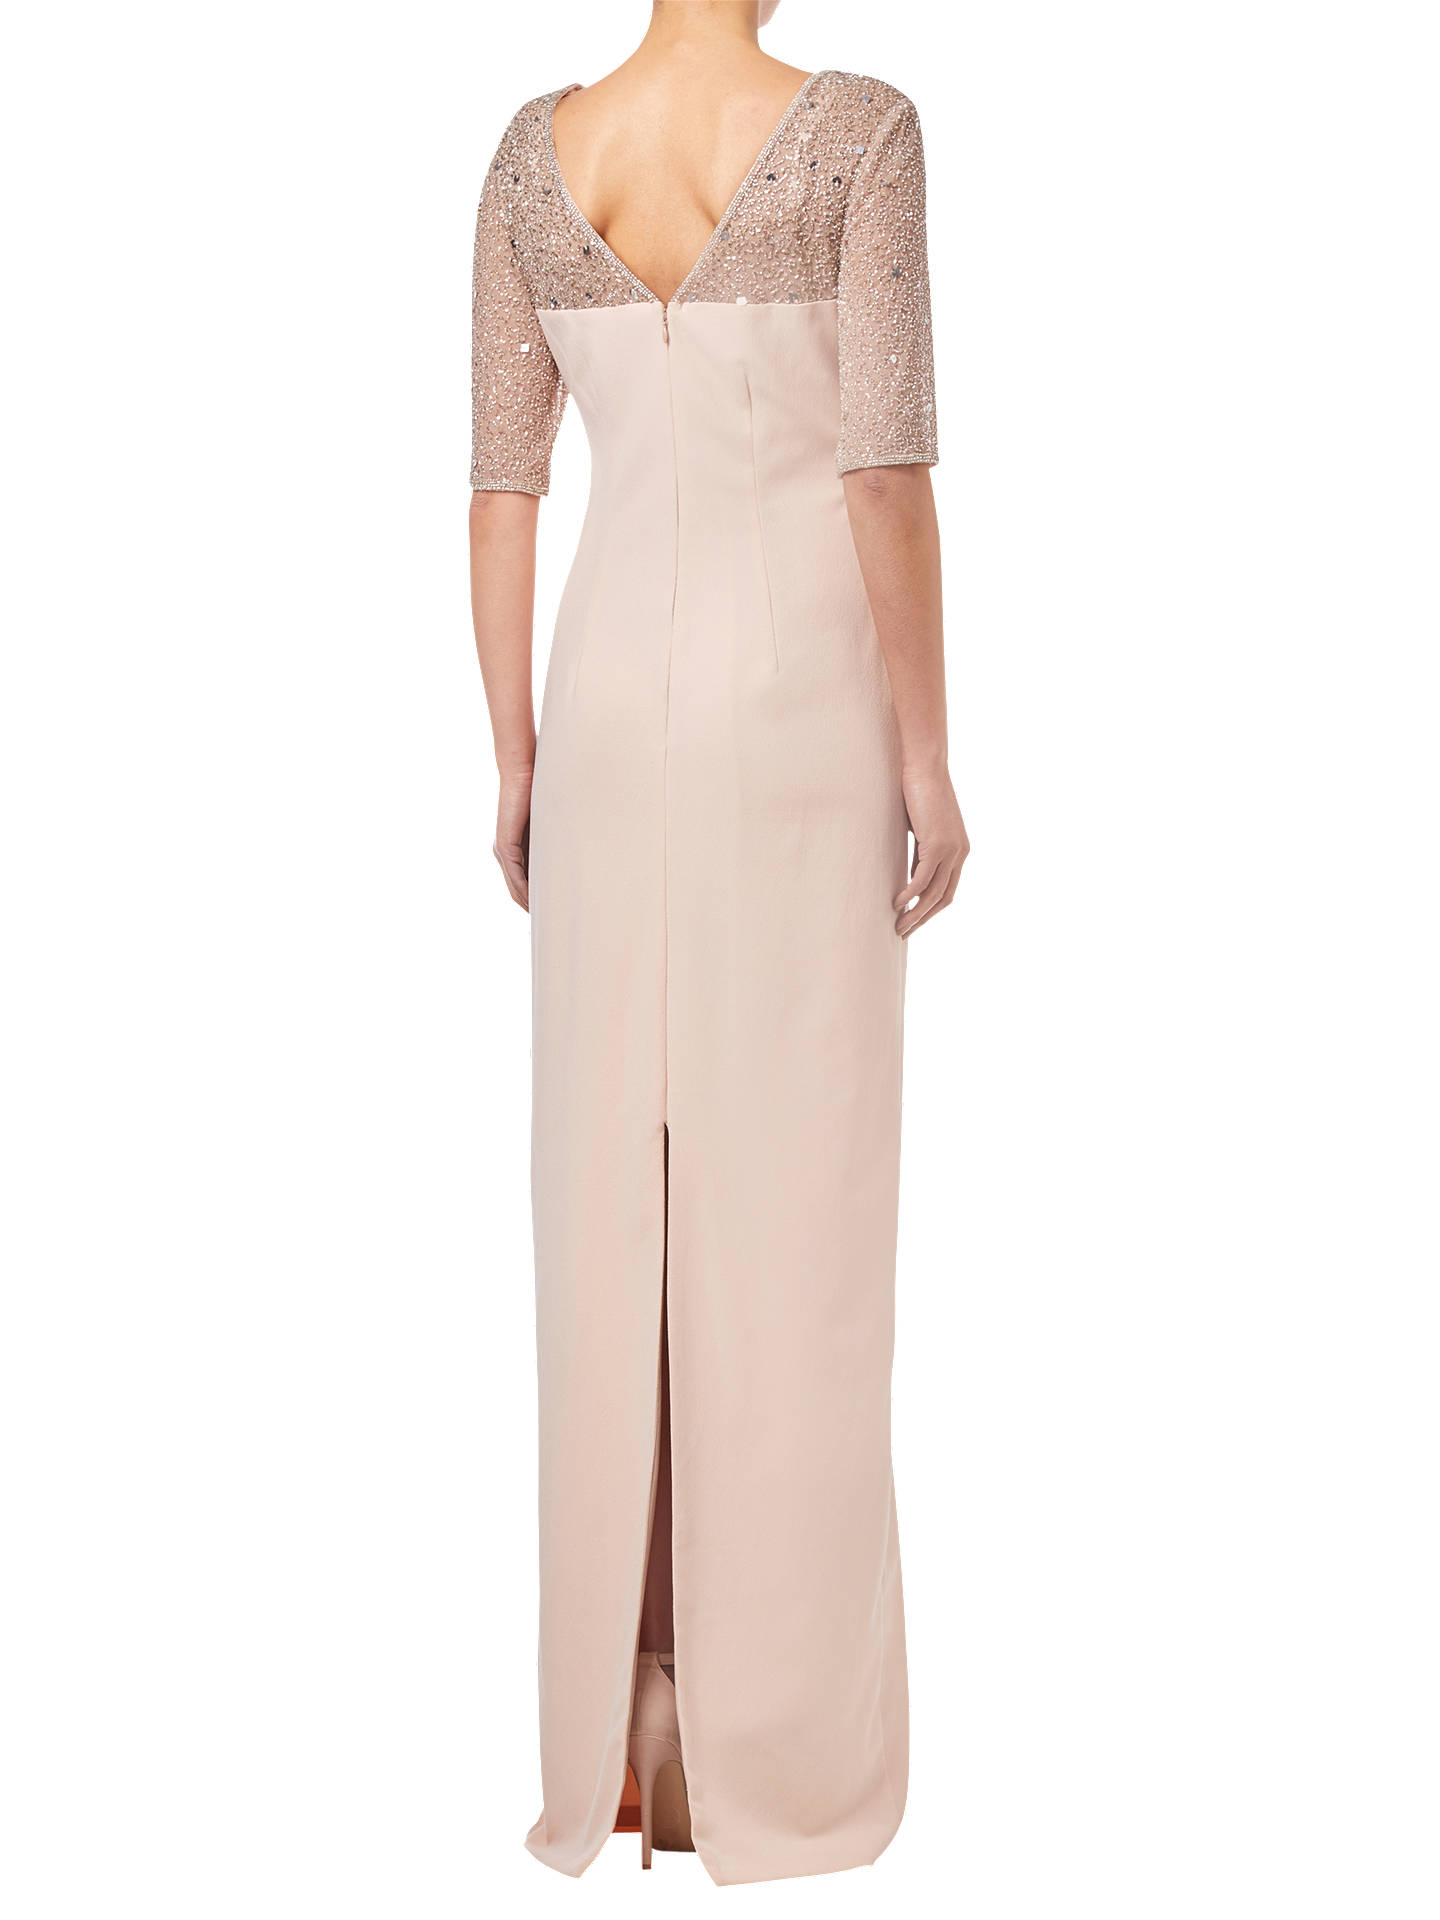 Buy Adrianna Papell Beaded Long Dress, Lily Rose, 8 Online at johnlewis.com